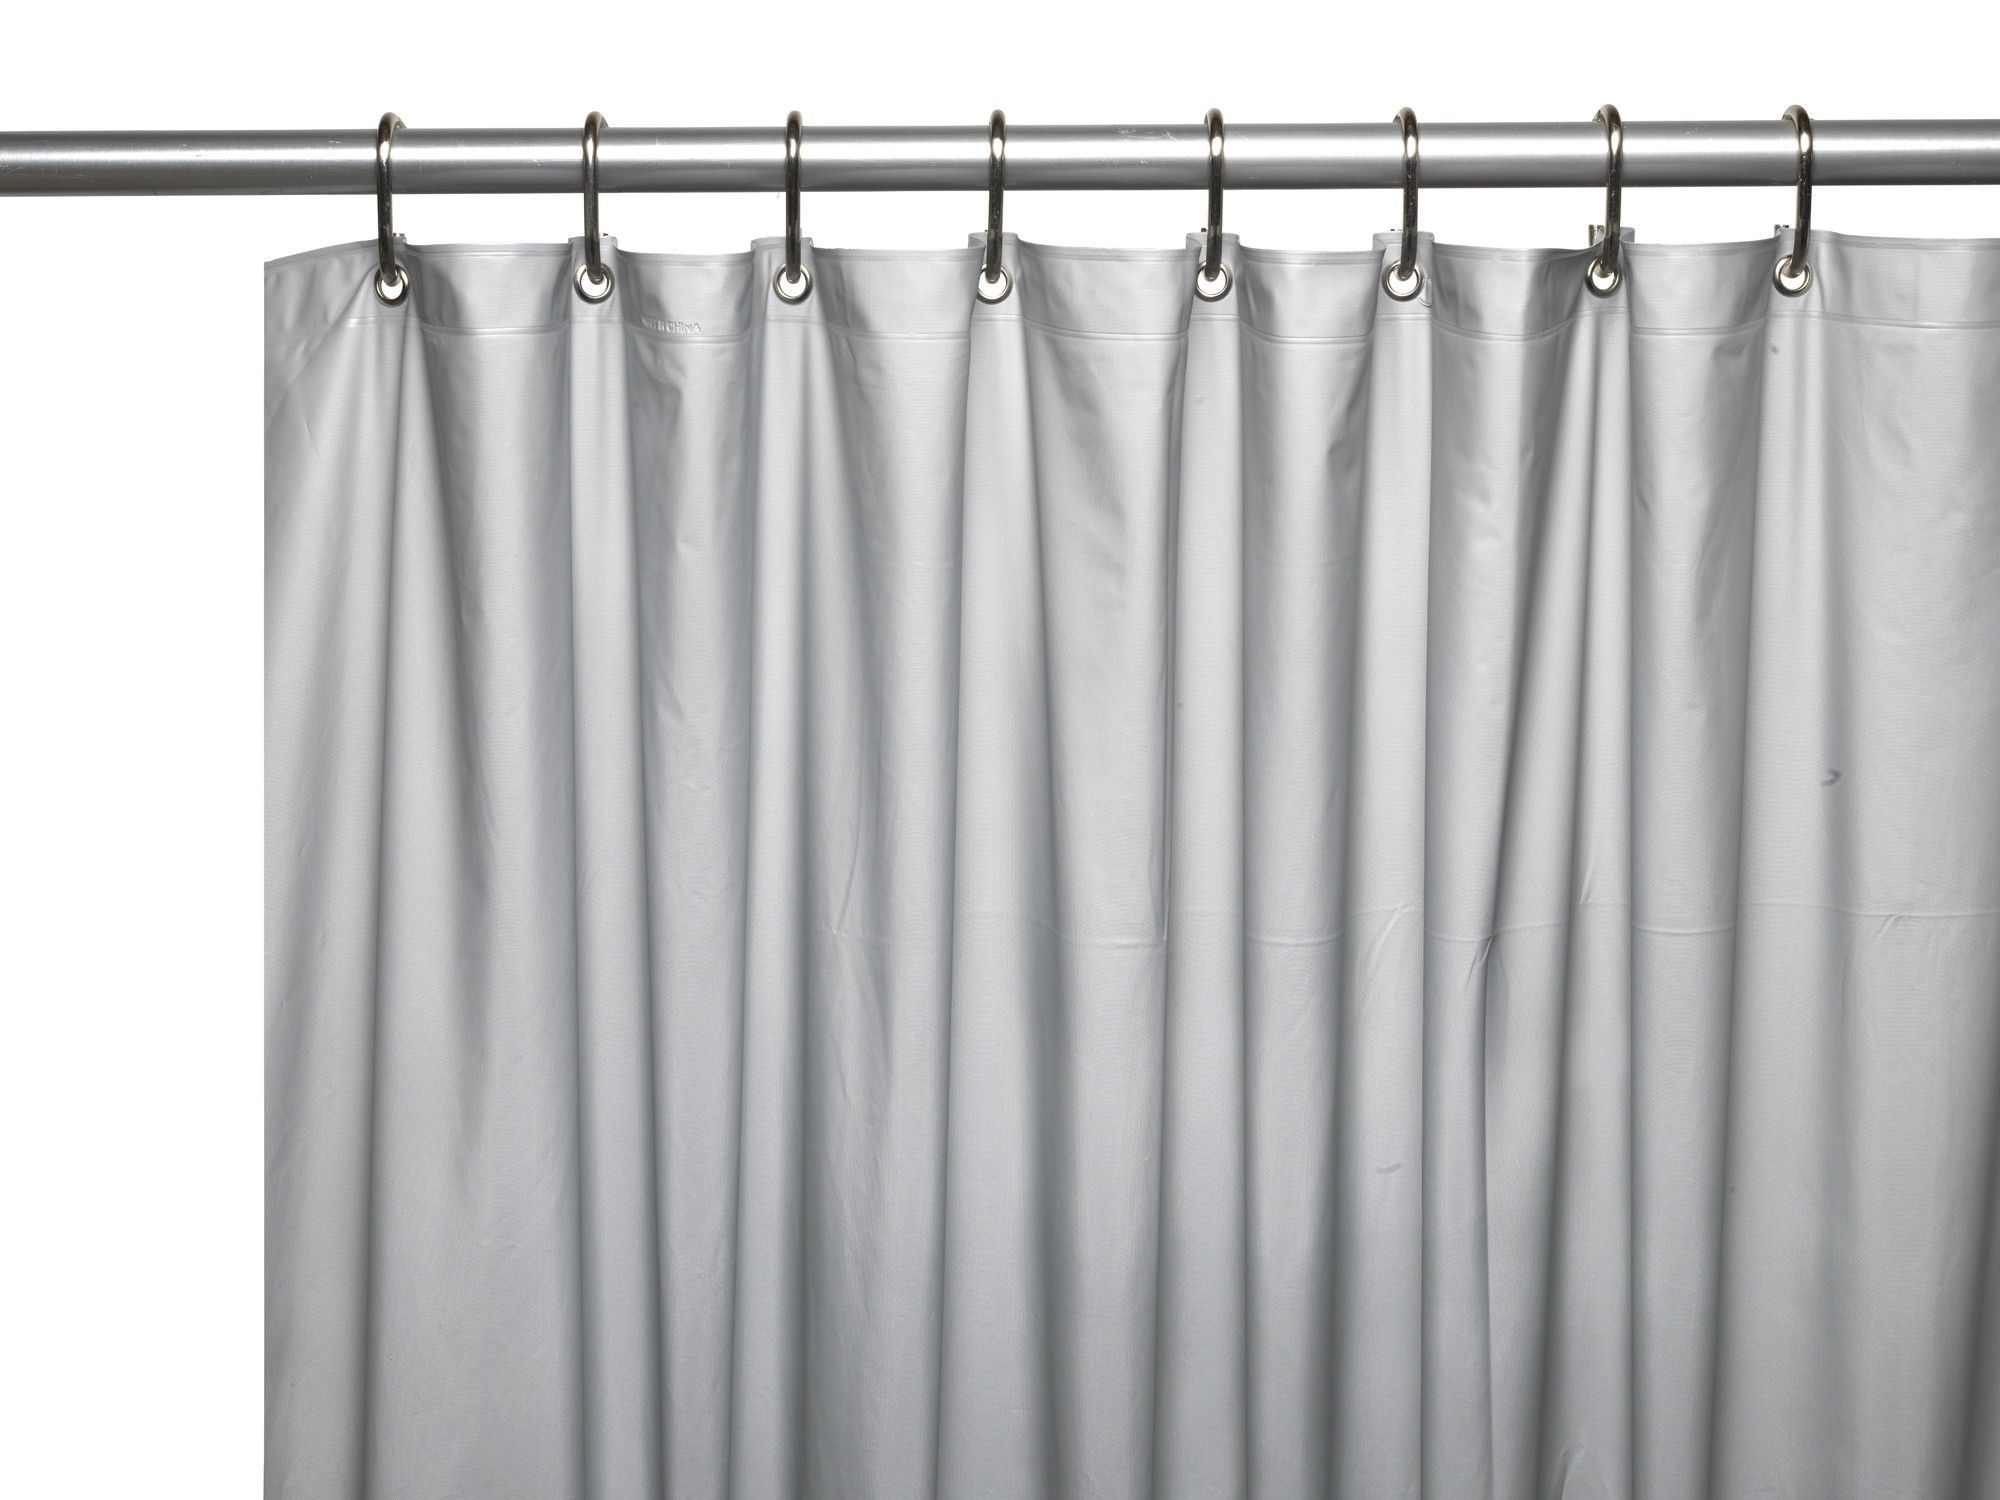 Vinyl 3 Gauge Shower Curtain Liner With Weighted Magnets And Metal